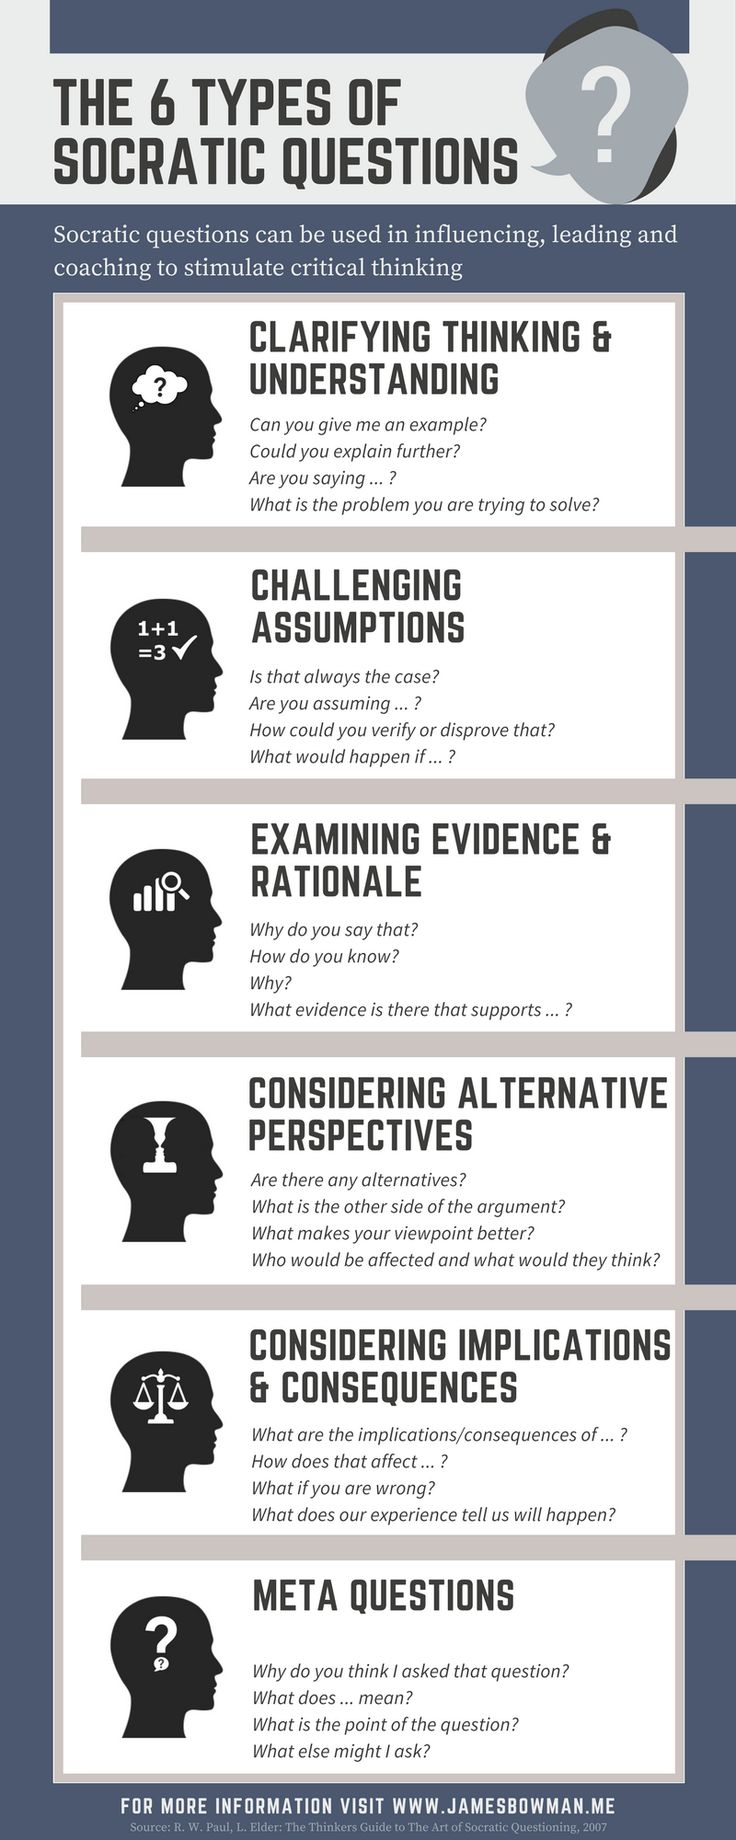 Infographic illustrating the 6 types of Socratic Question to stimulate critical thinking